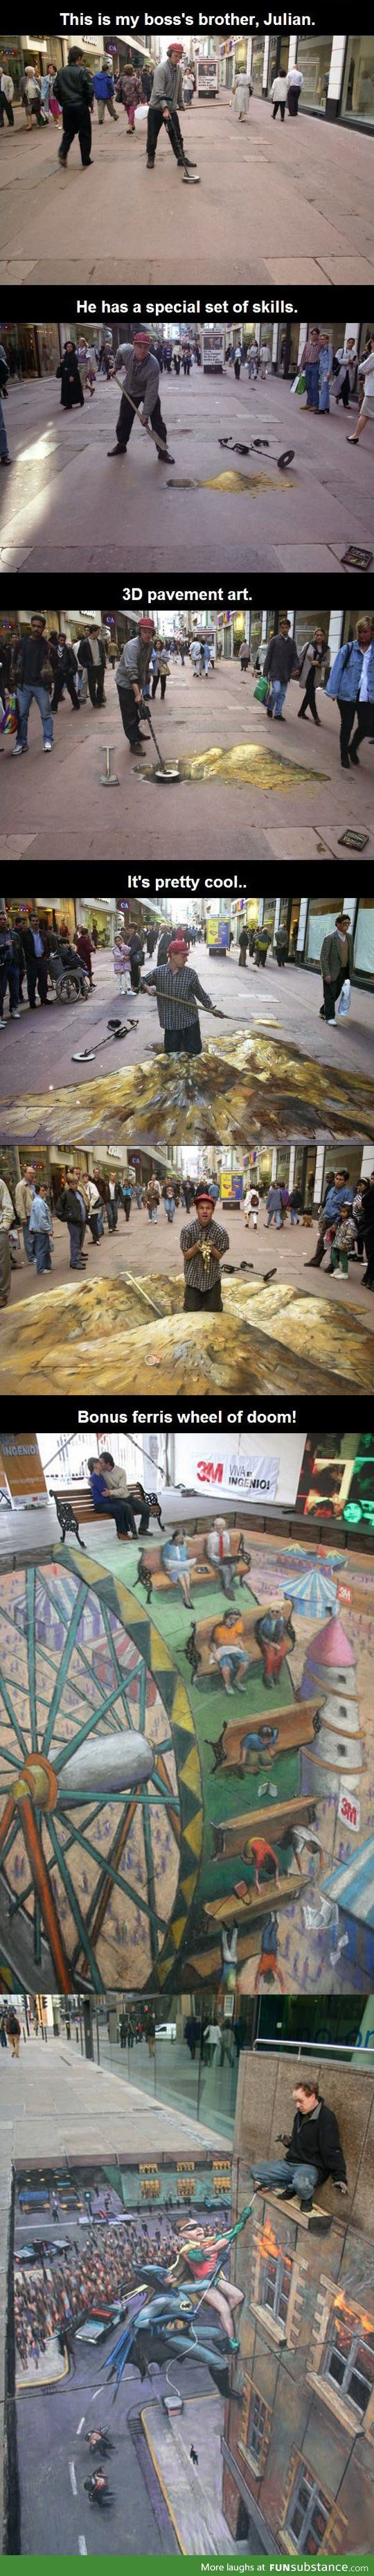 3D pavement art - FunSubstance.com.